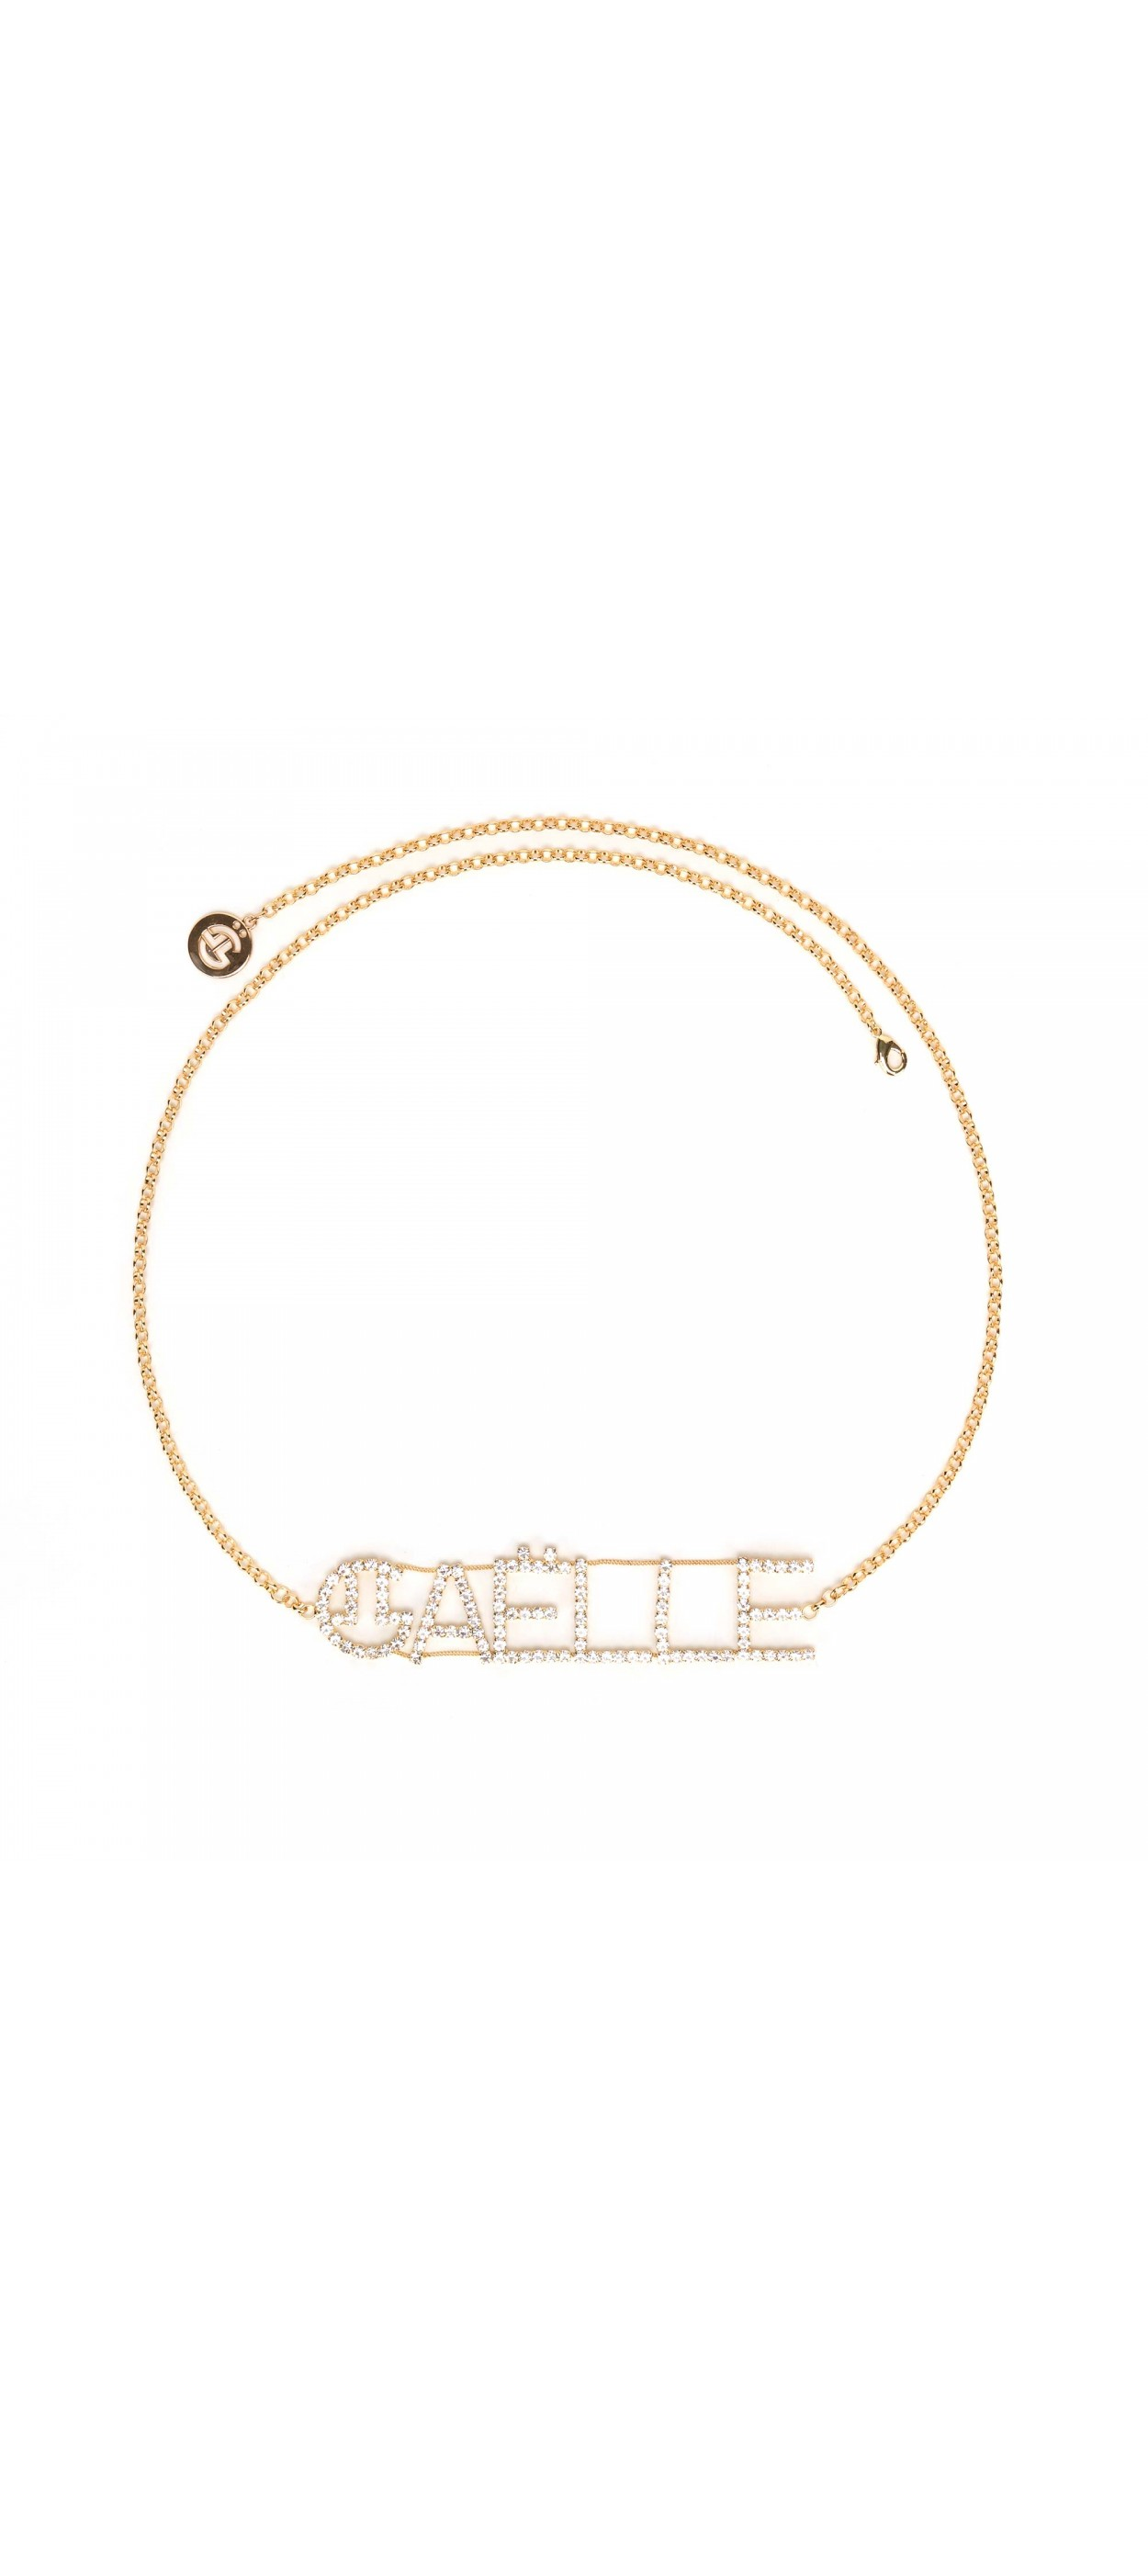 BELT - GBDA2119 - GAELLE PARIS